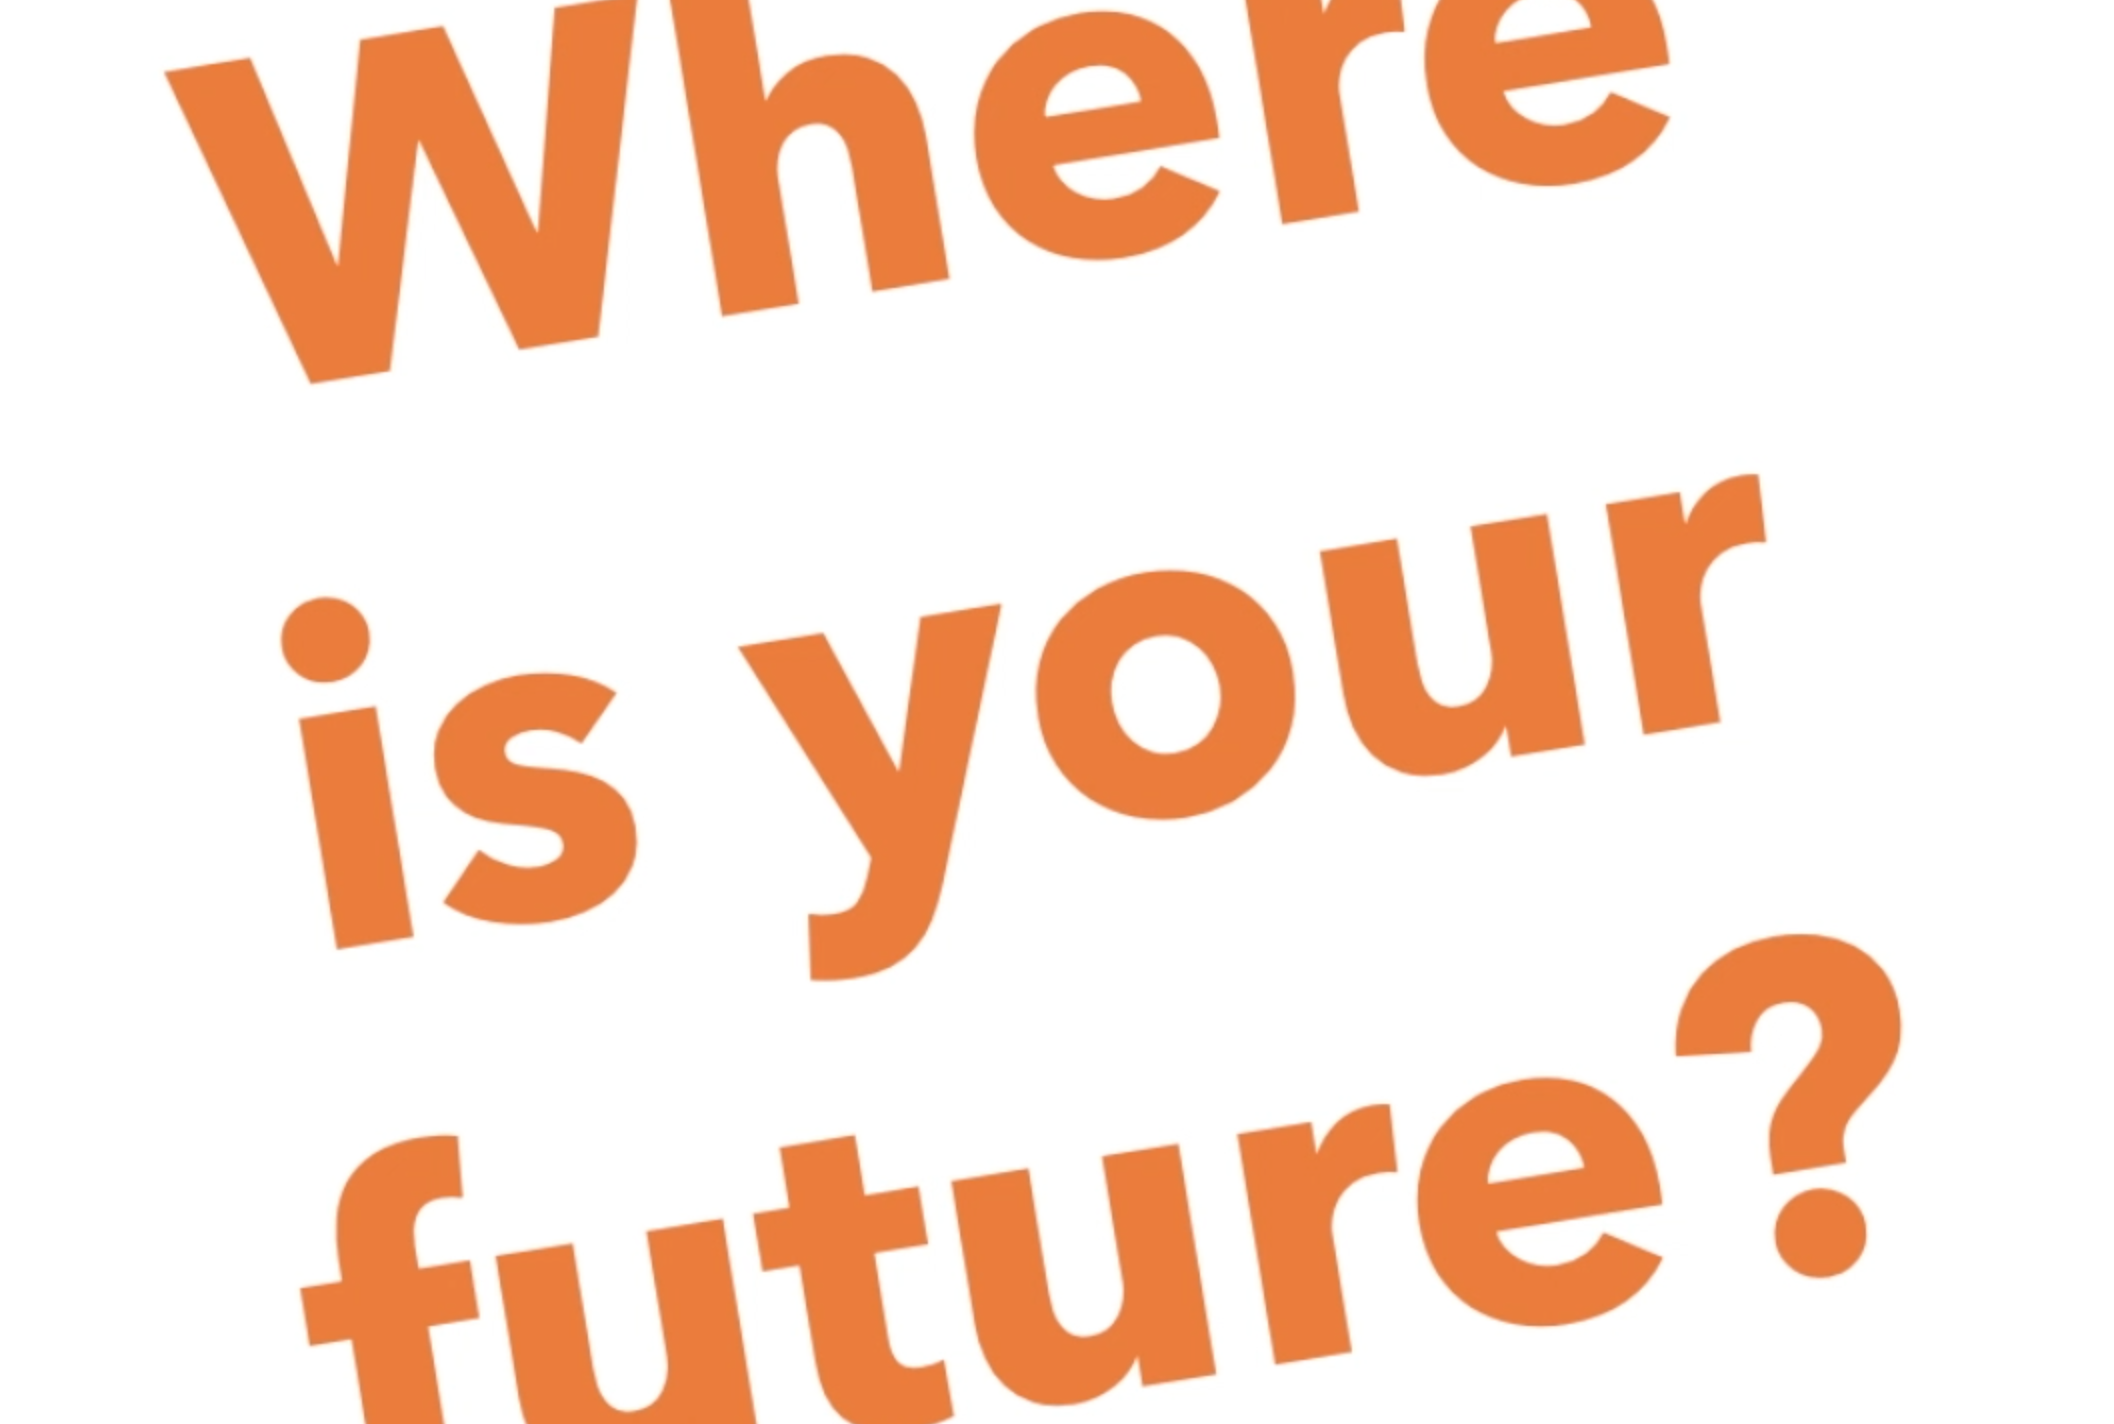 where is your future?